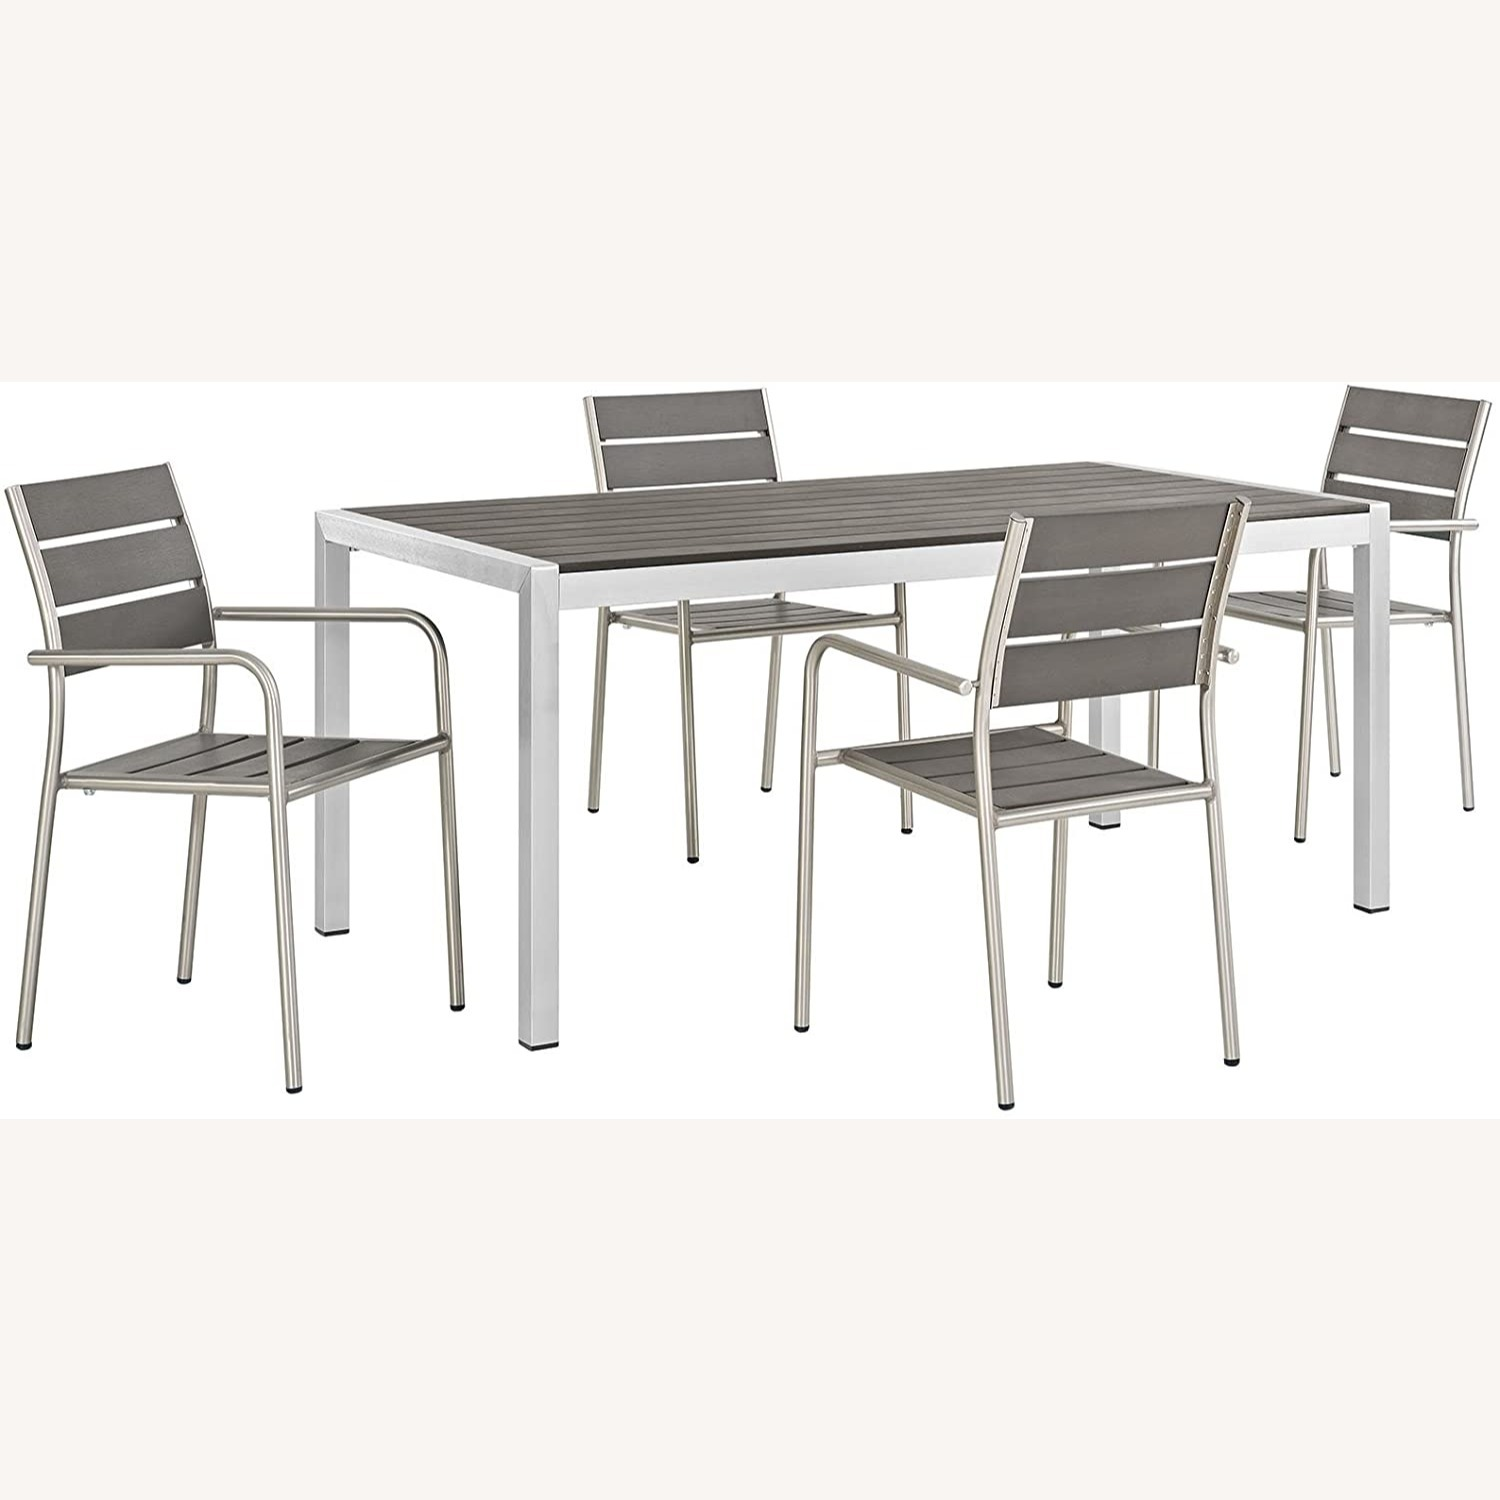 Modern 5-Piece Dining Set In Silver Gray Finish - image-0